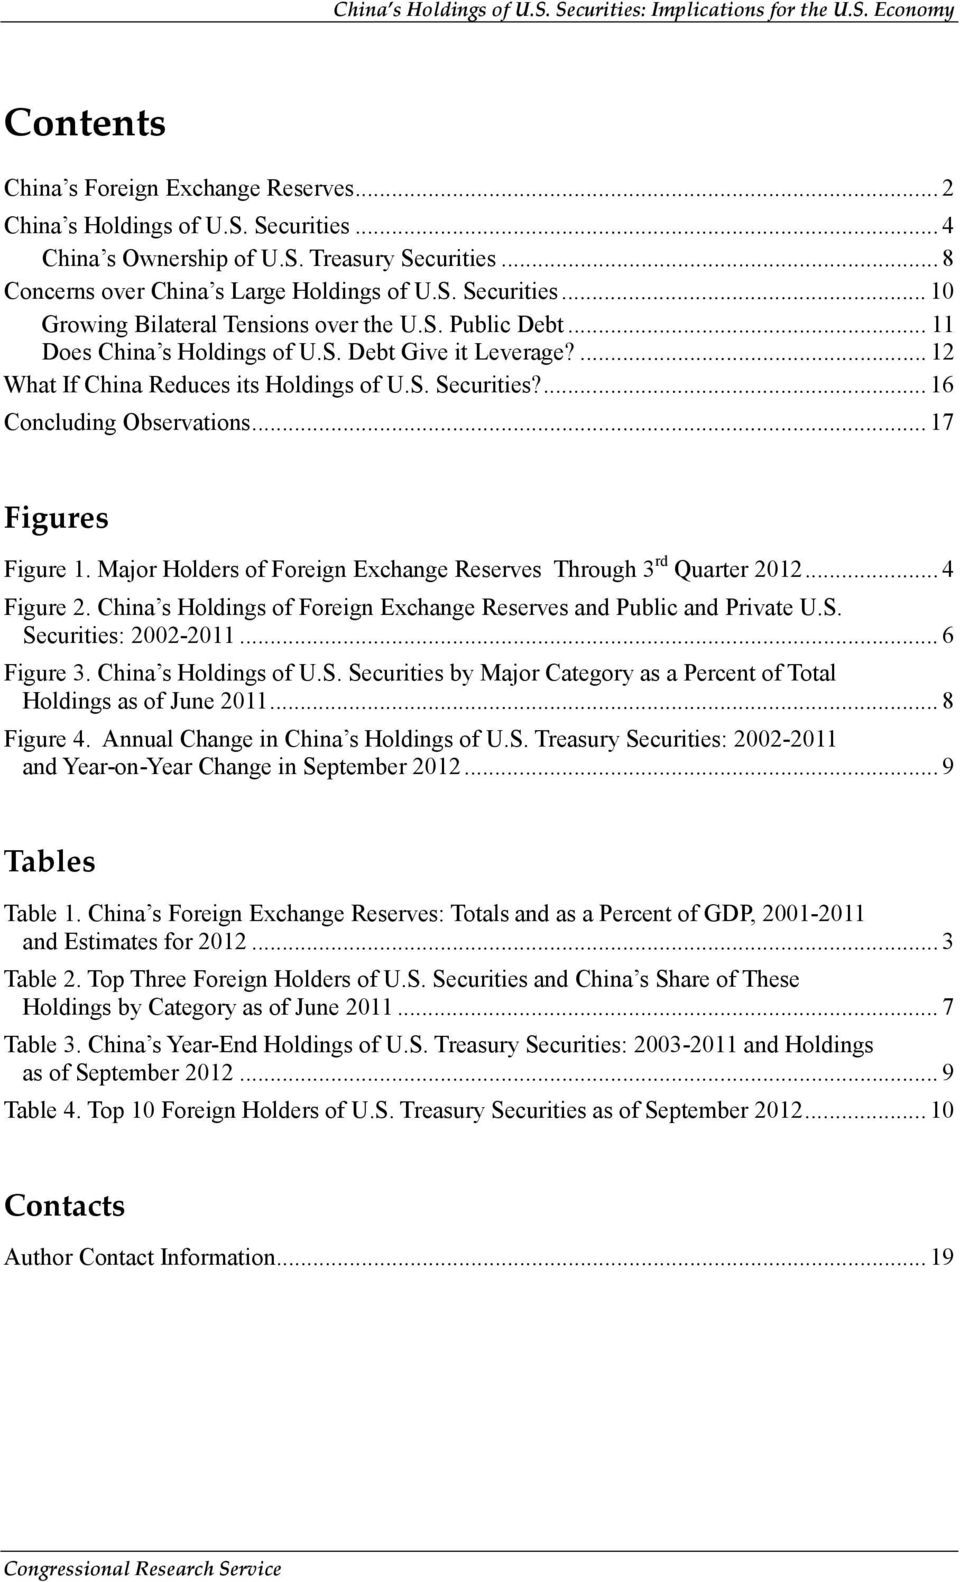 Major Holders of Foreign Exchange Reserves Through 3 rd Quarter 2012... 4 Figure 2. China s Holdings of Foreign Exchange Reserves and Public and Private U.S. Securities: 2002-2011... 6 Figure 3.